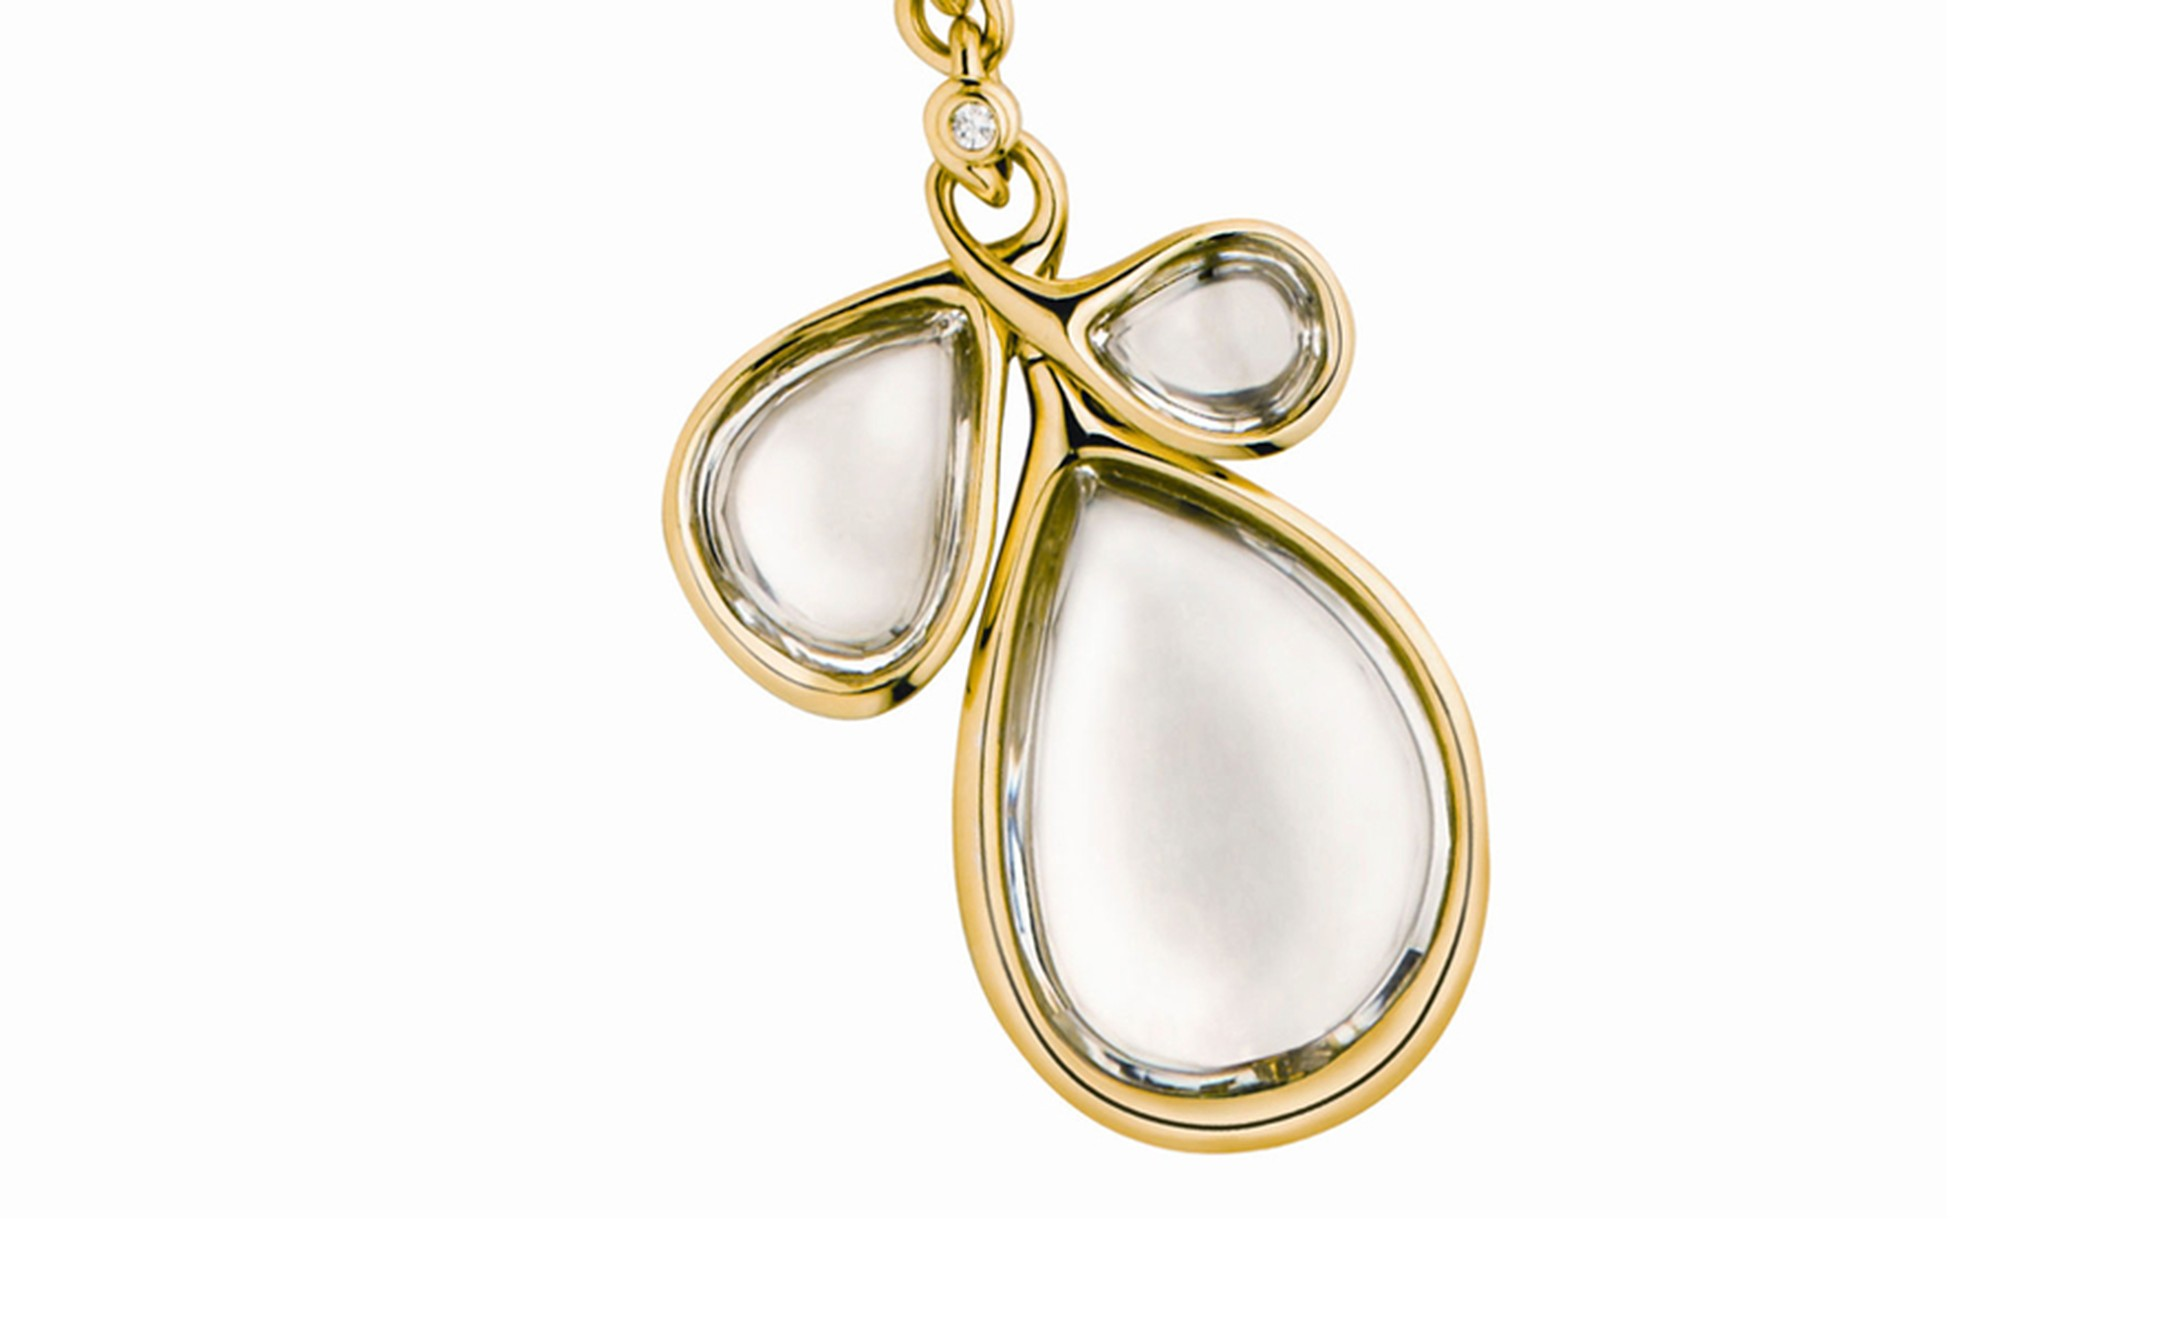 Diane von Furstenberg by H Stern. Sutras bold Pendant in yellow gold, rock crystal and a diamond. Price from £10,000